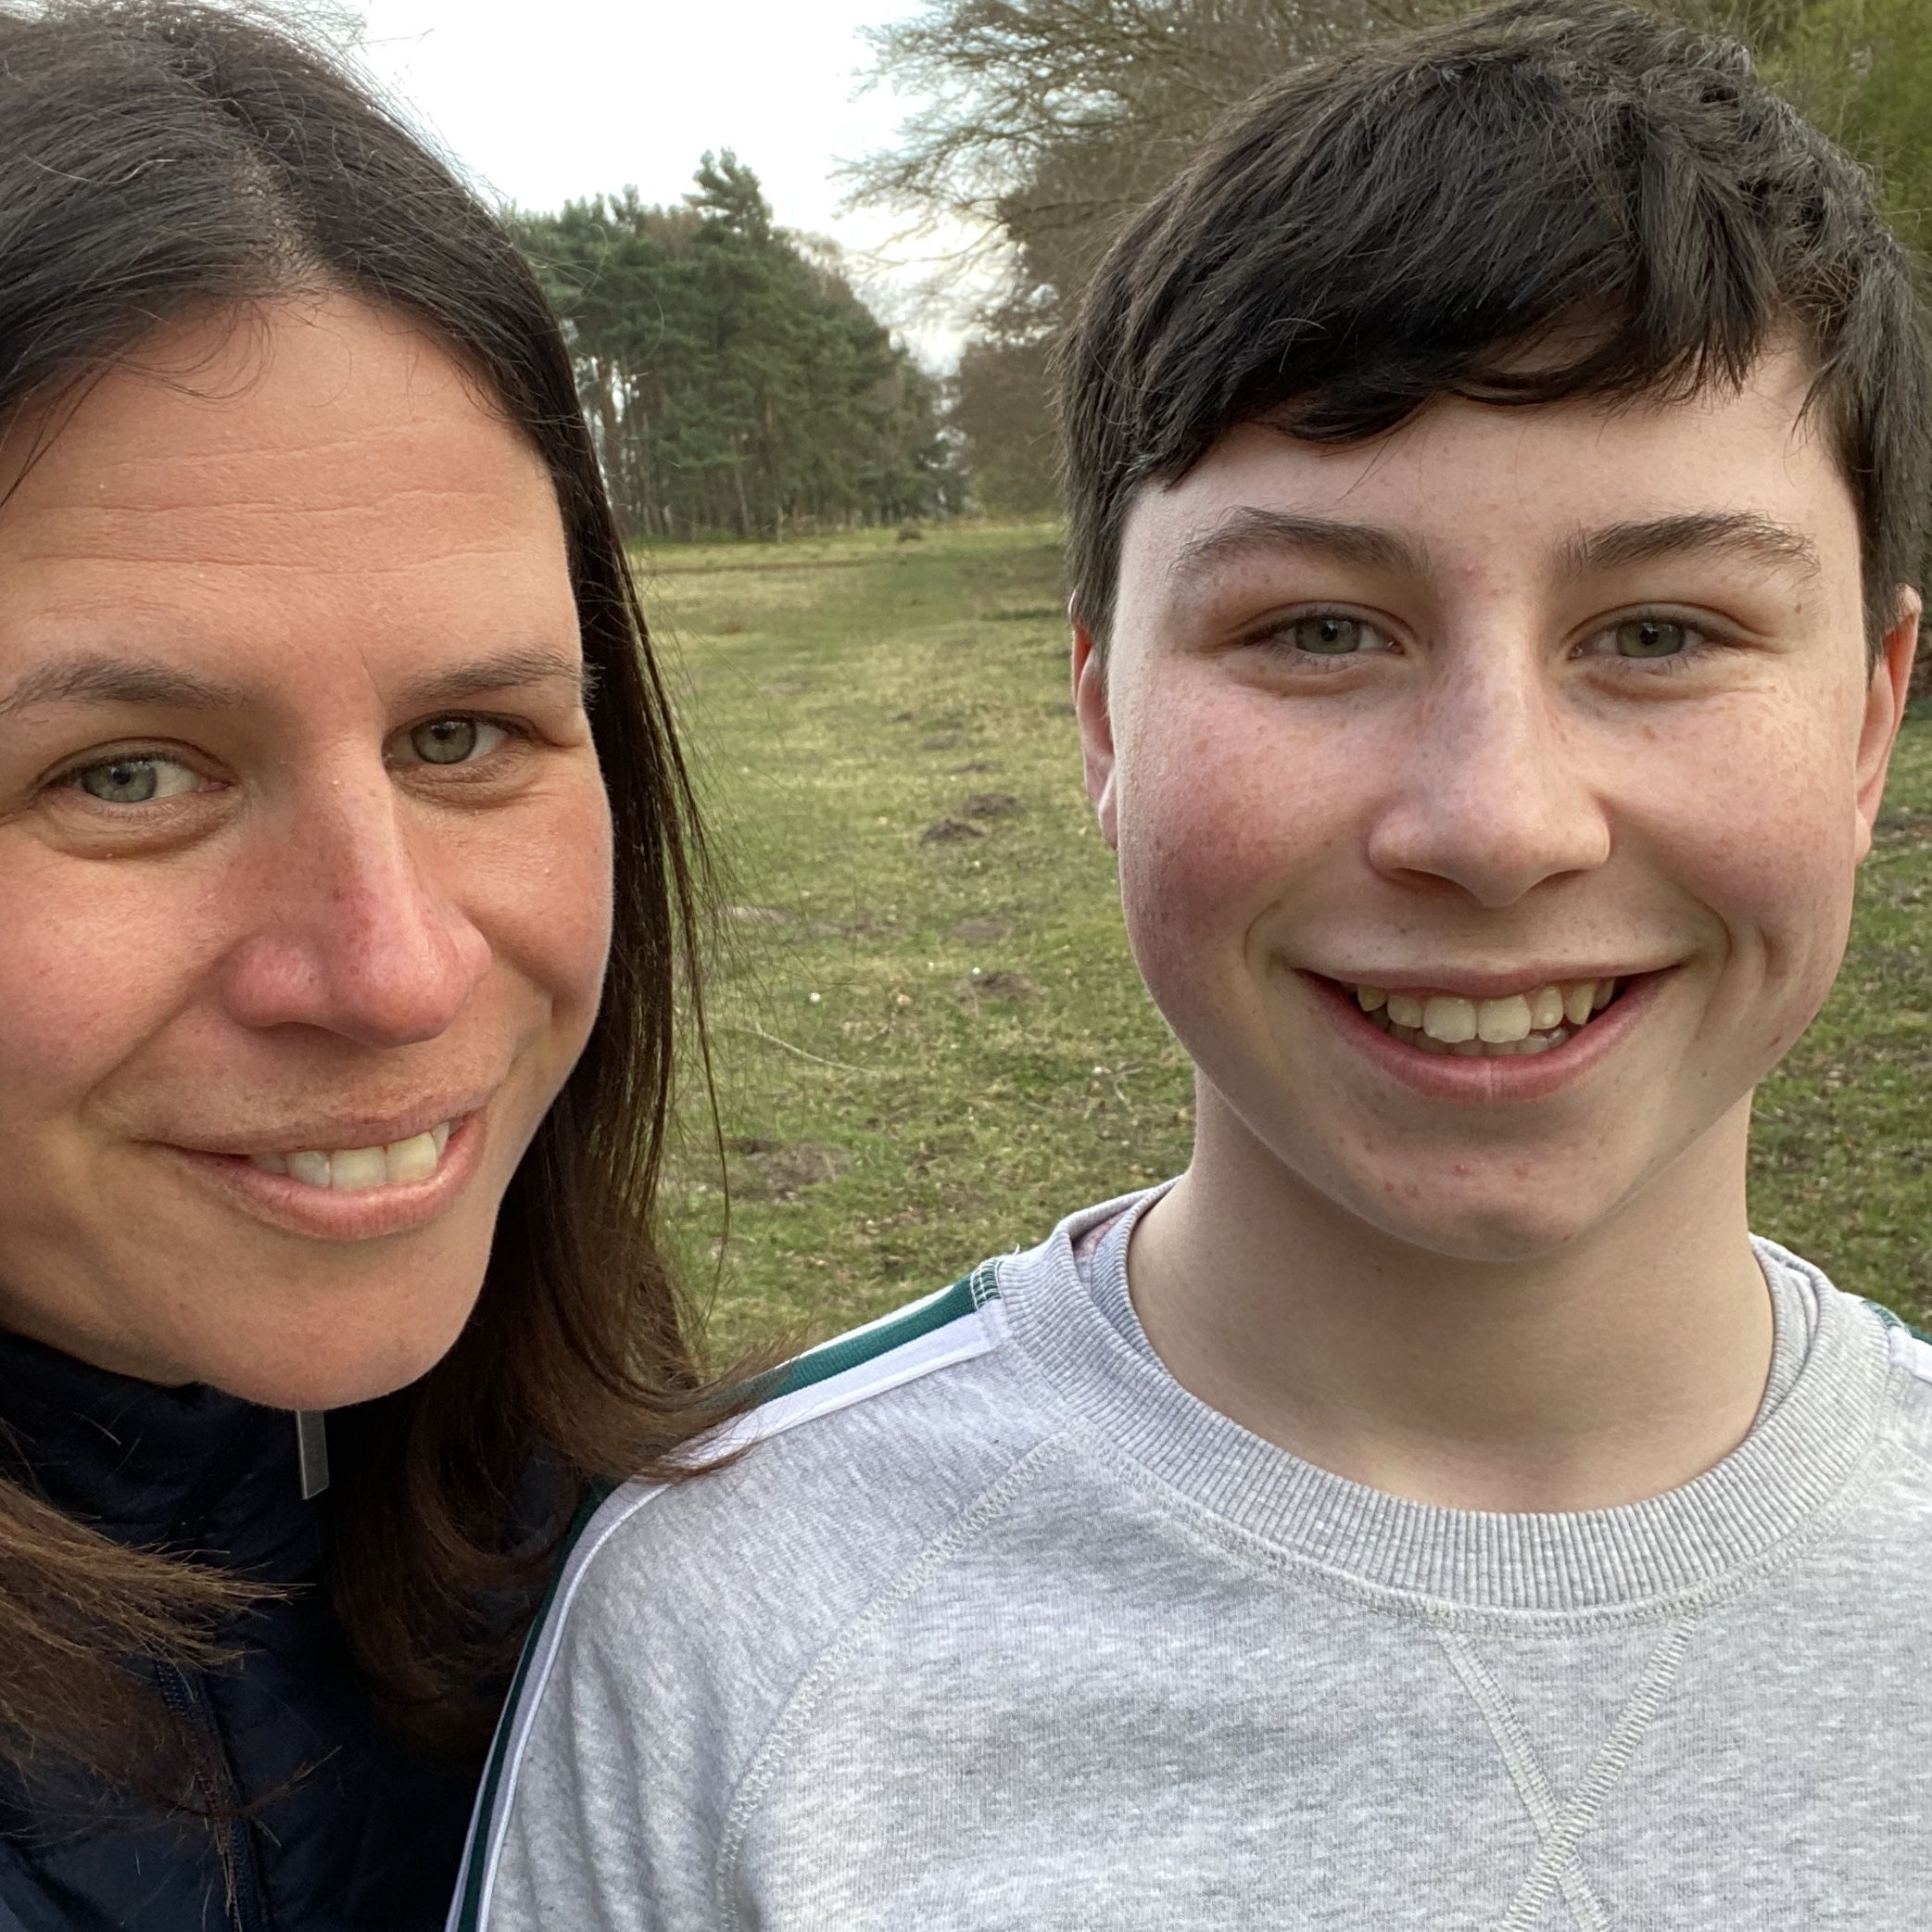 mother and son having a selfie whilst out for their one exercise during lockdown